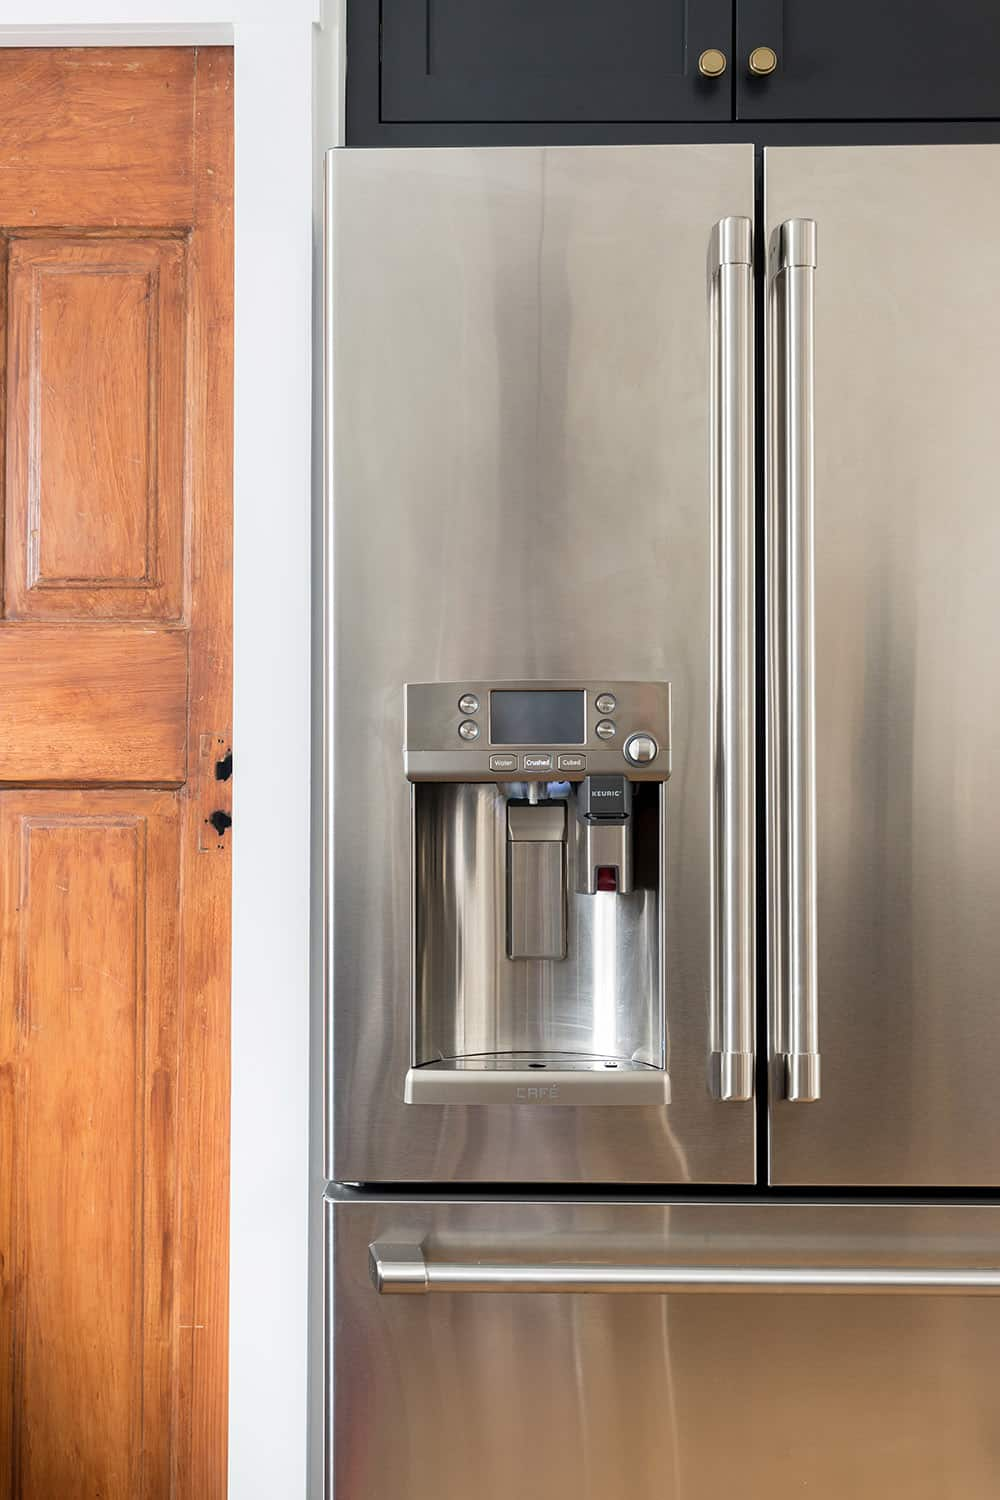 The front of a GE Cafe series stainless steel refrigerator.